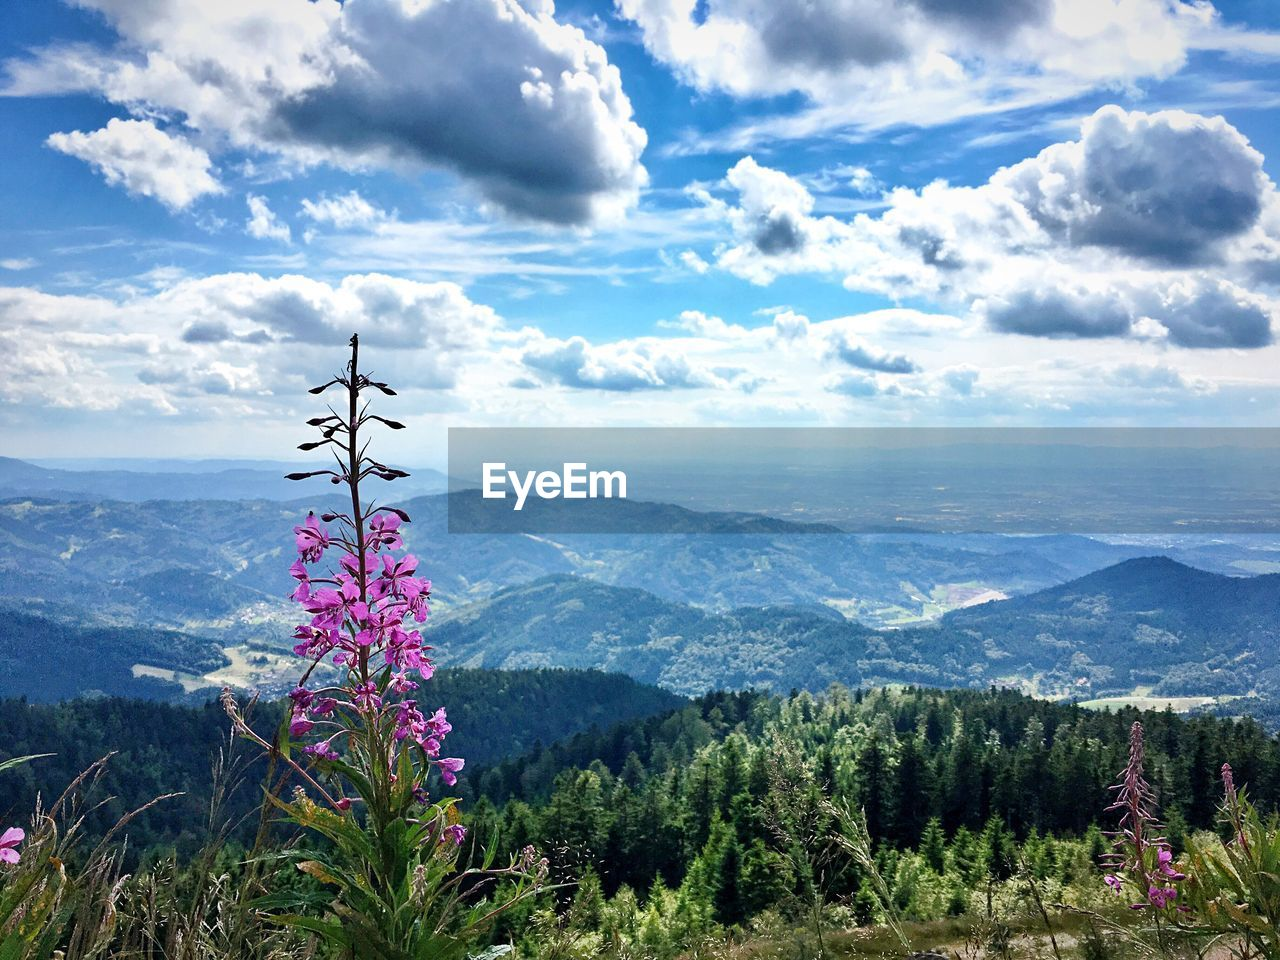 mountain, beauty in nature, nature, mountain range, sky, cloud - sky, scenics, day, outdoors, tranquil scene, no people, tranquility, landscape, flower, tree, scenery